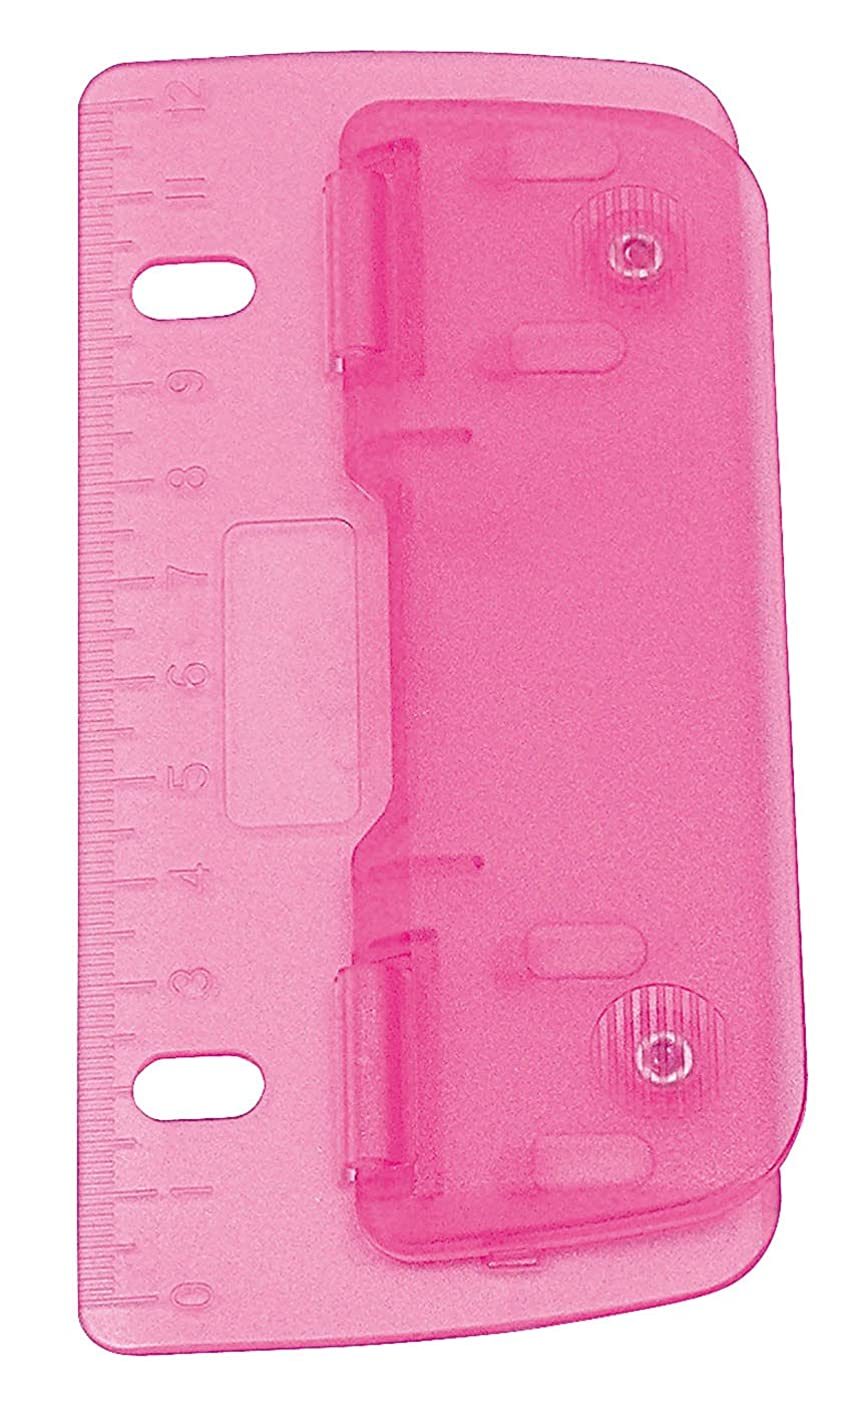 Wedo 67809?Double Pocket Hole Punch Plastic for Filing for 8?cm Perforation with 12?cm Scale, Pink